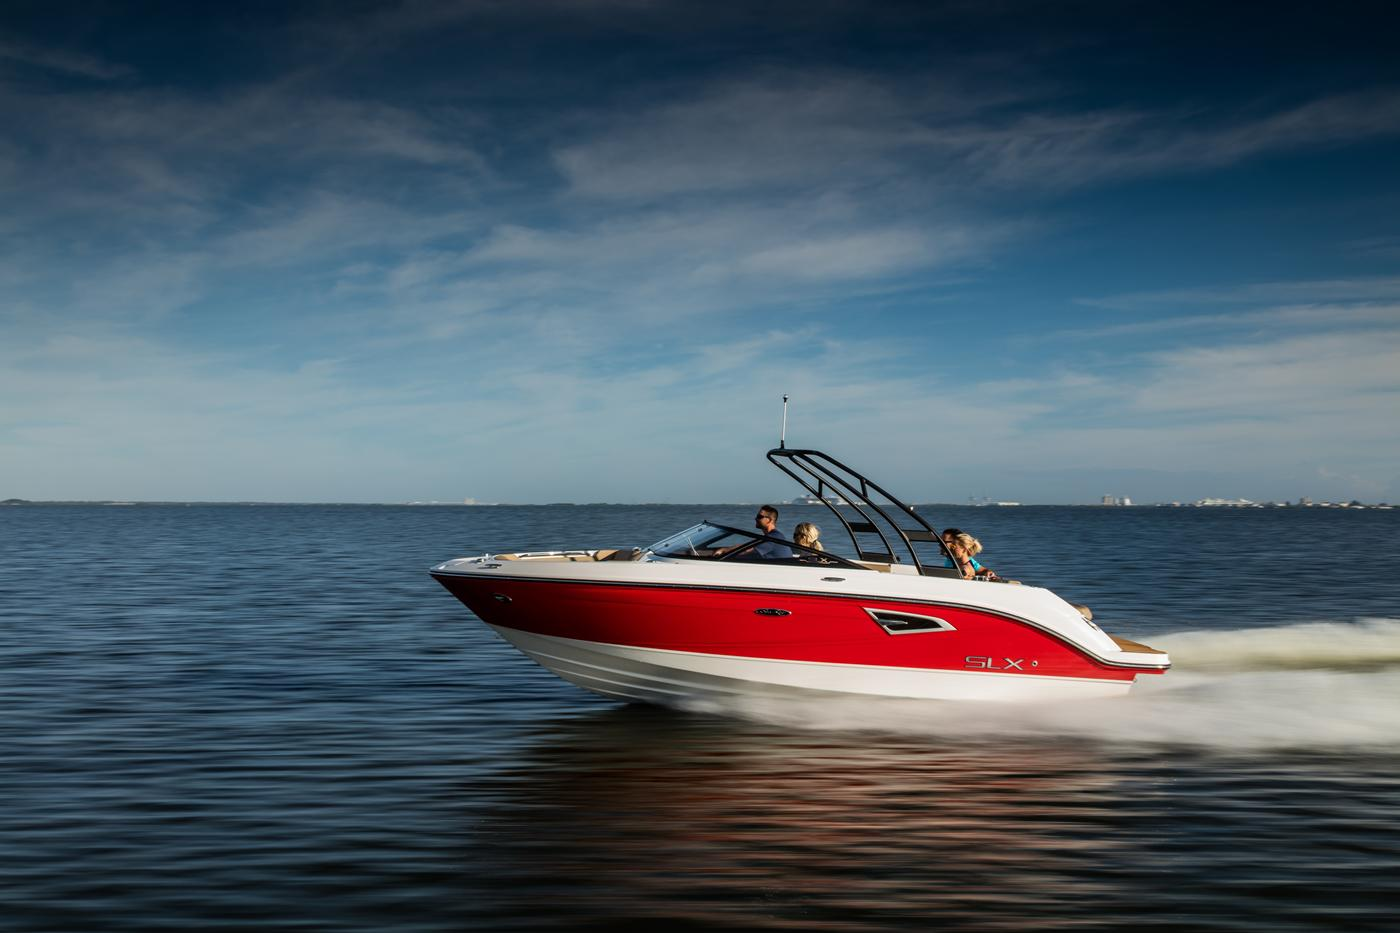 New 2019 Sea Ray 250 SLX - Hutchinson's Boat Works